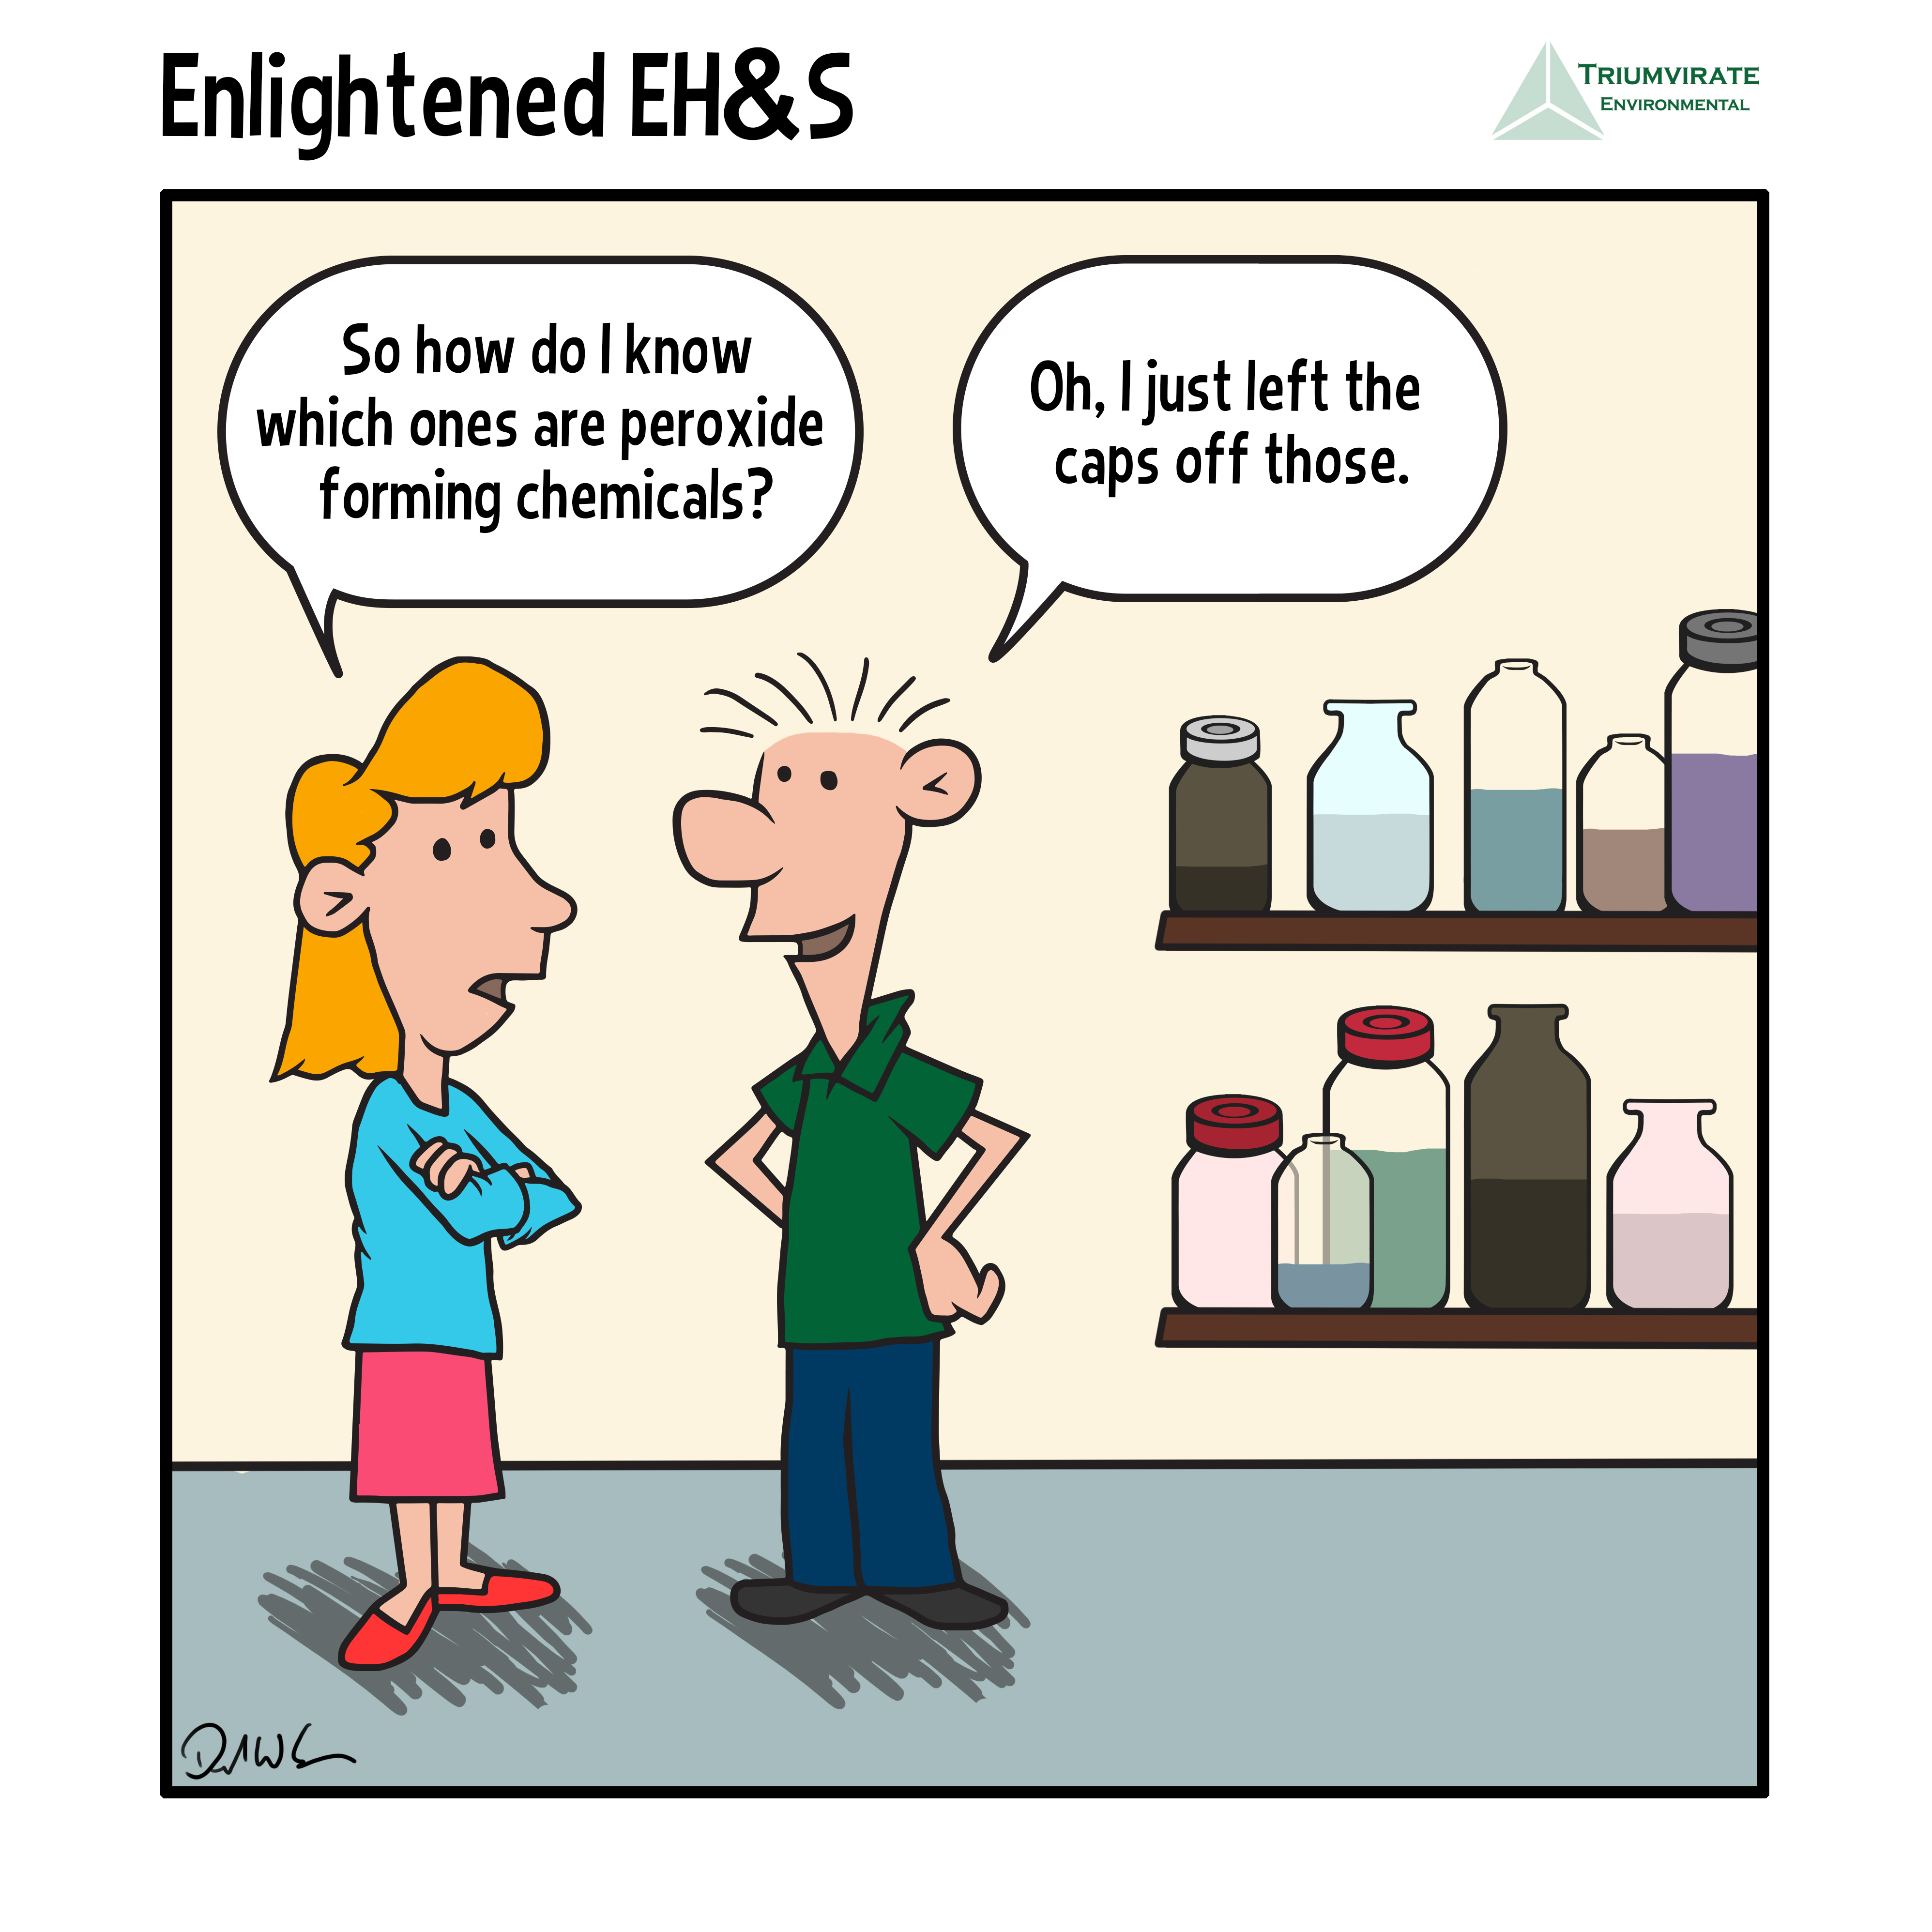 Enlightened EH&S: Peroxide Forming Compounds